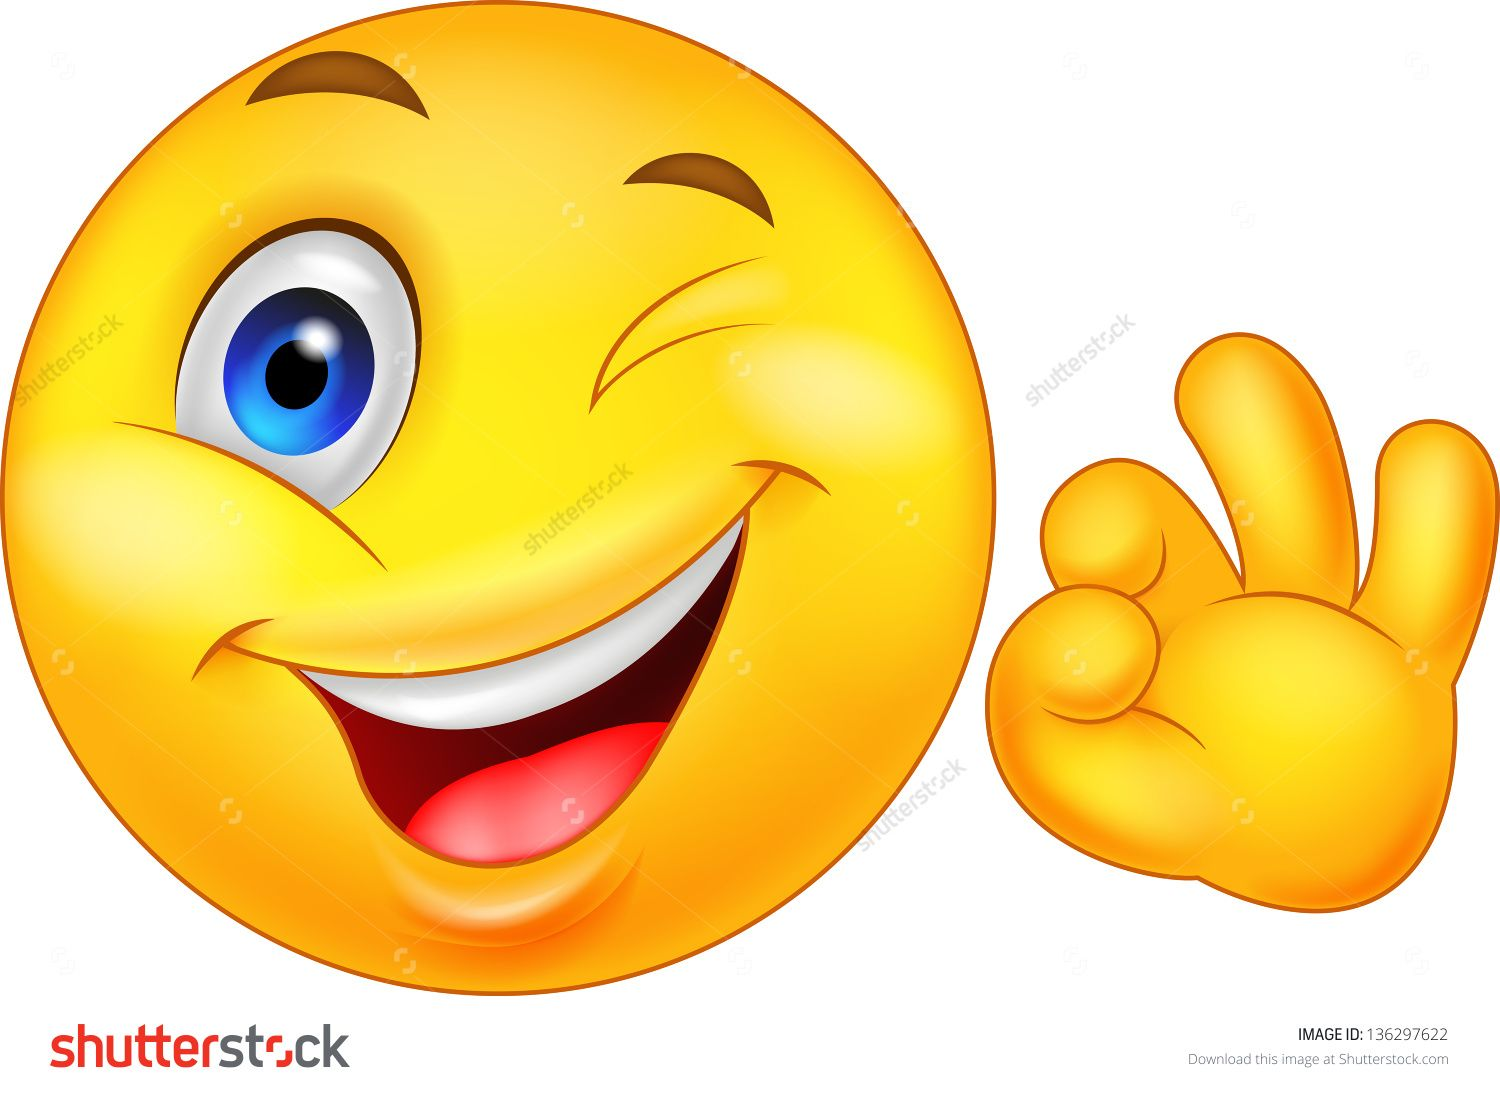 3d smiley stock photos, images, & pictures | shutterstock | box tops